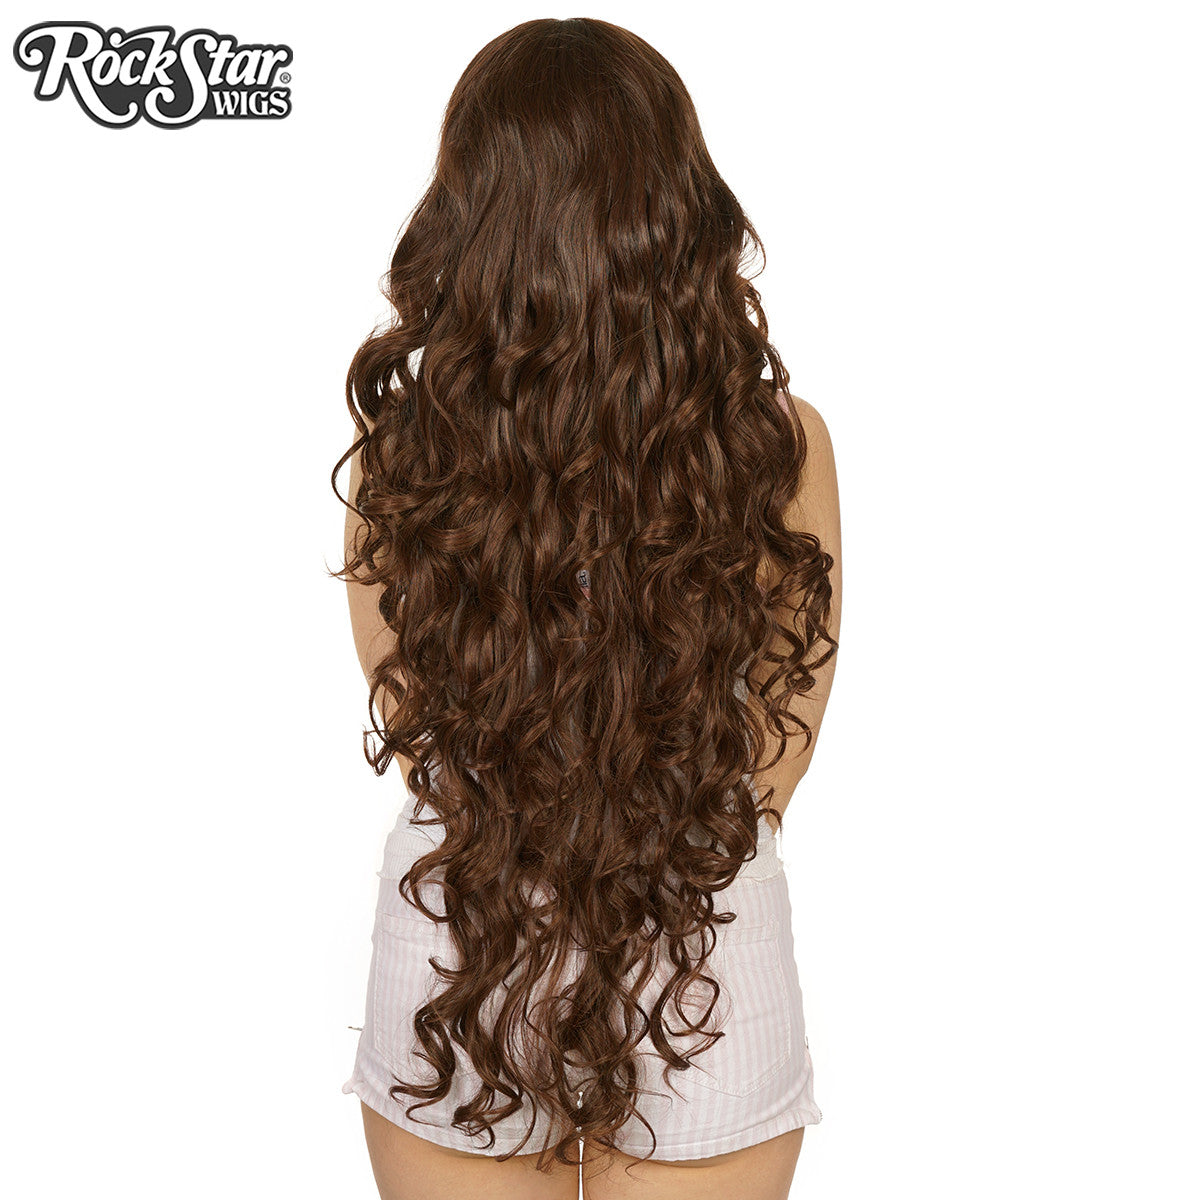 RockStar Wigs® <br> Godiva™ Collection - Dark Brown -00182